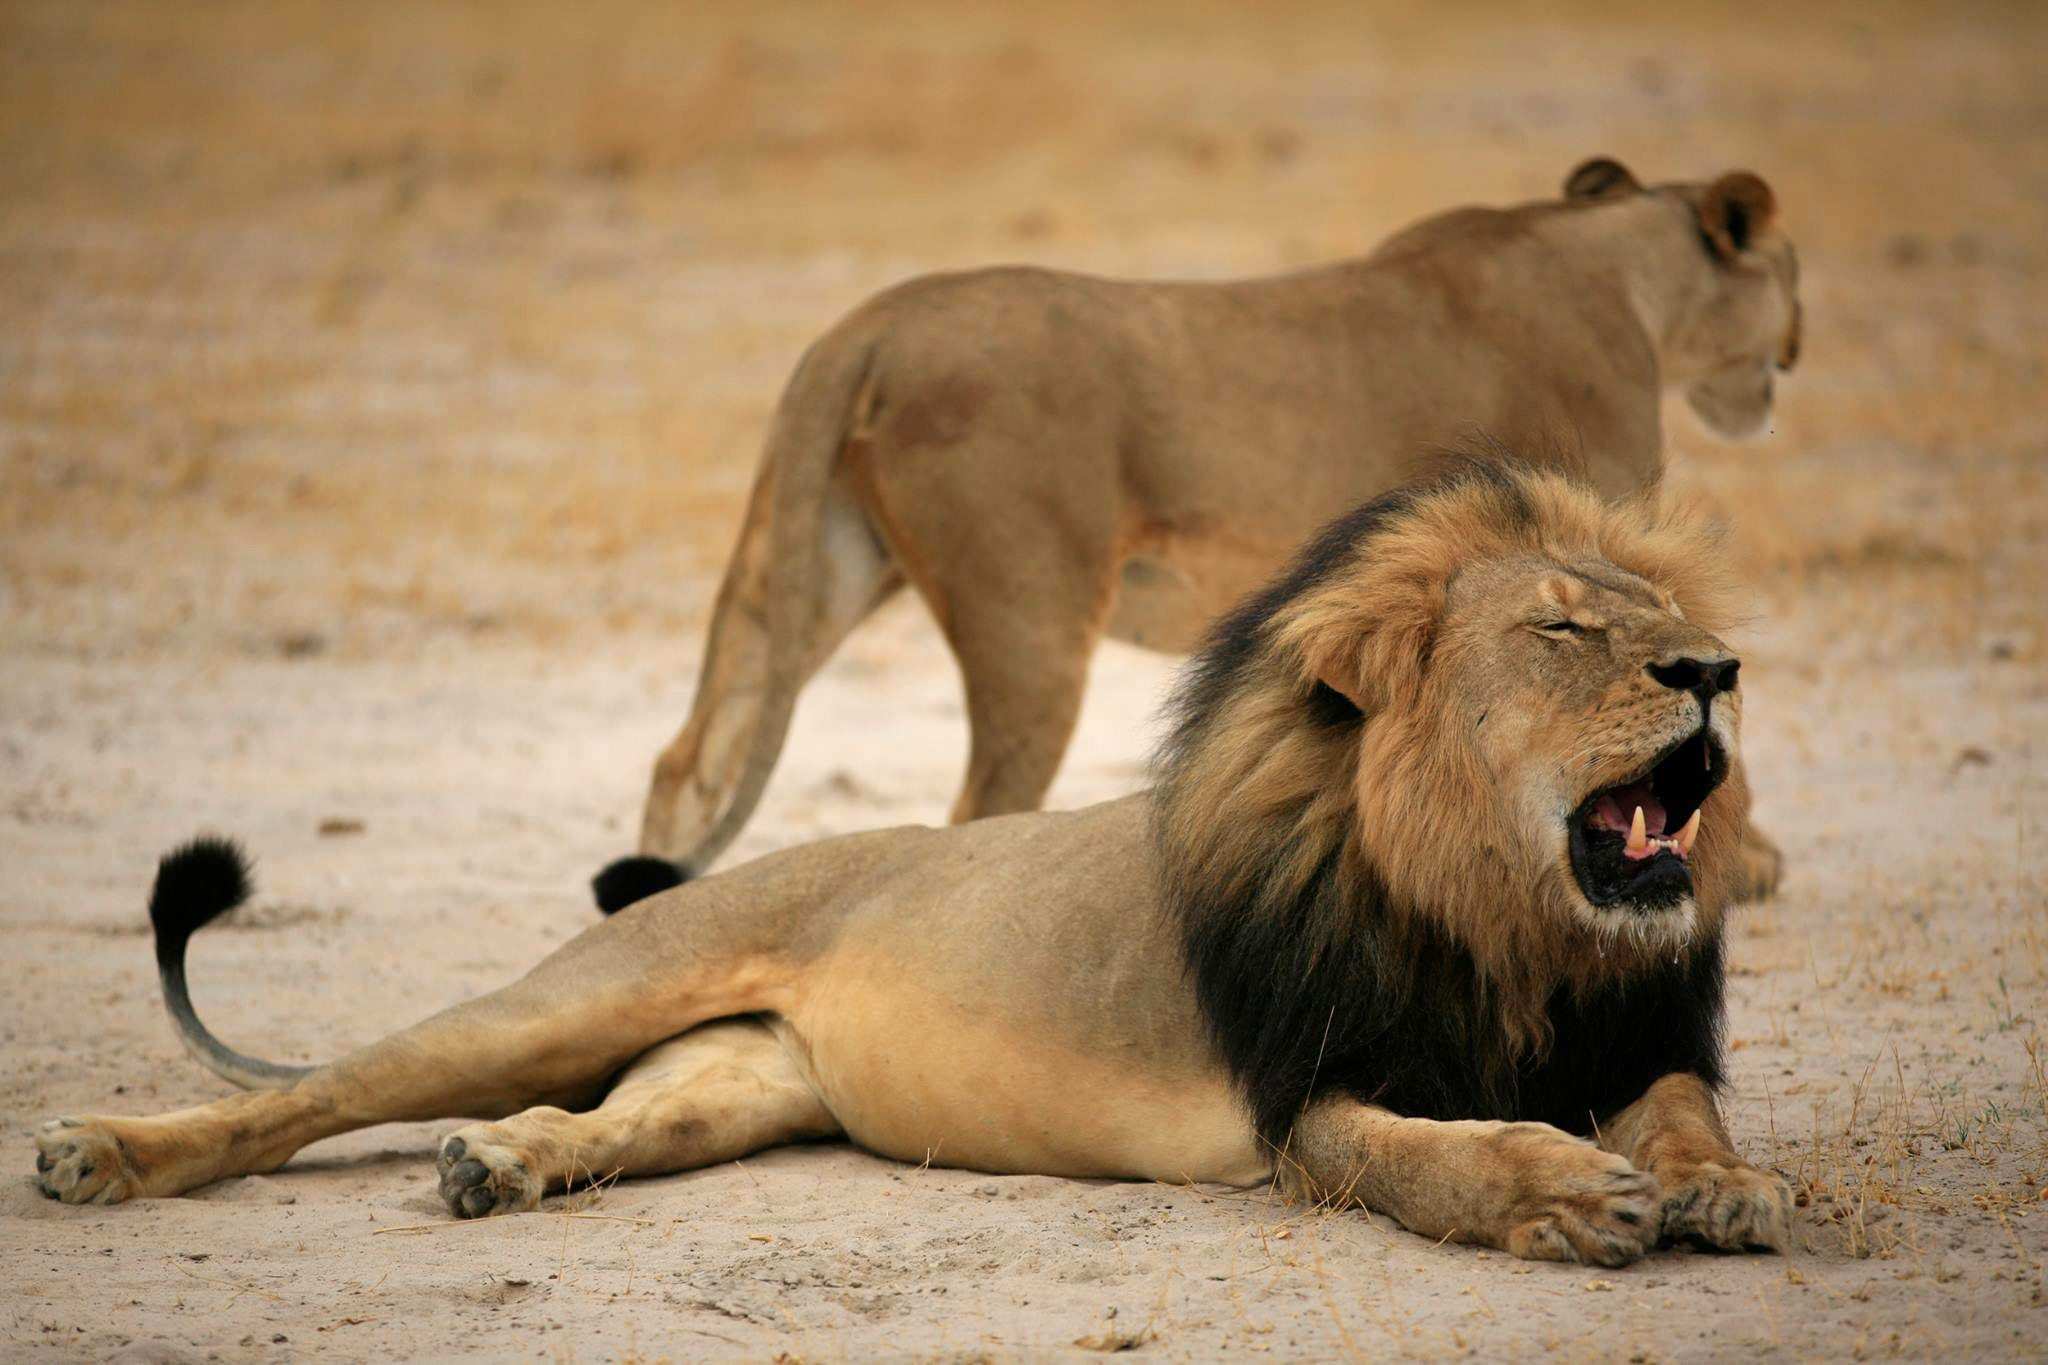 Cecil the Lion died 40 hours after being shot with a crossbow